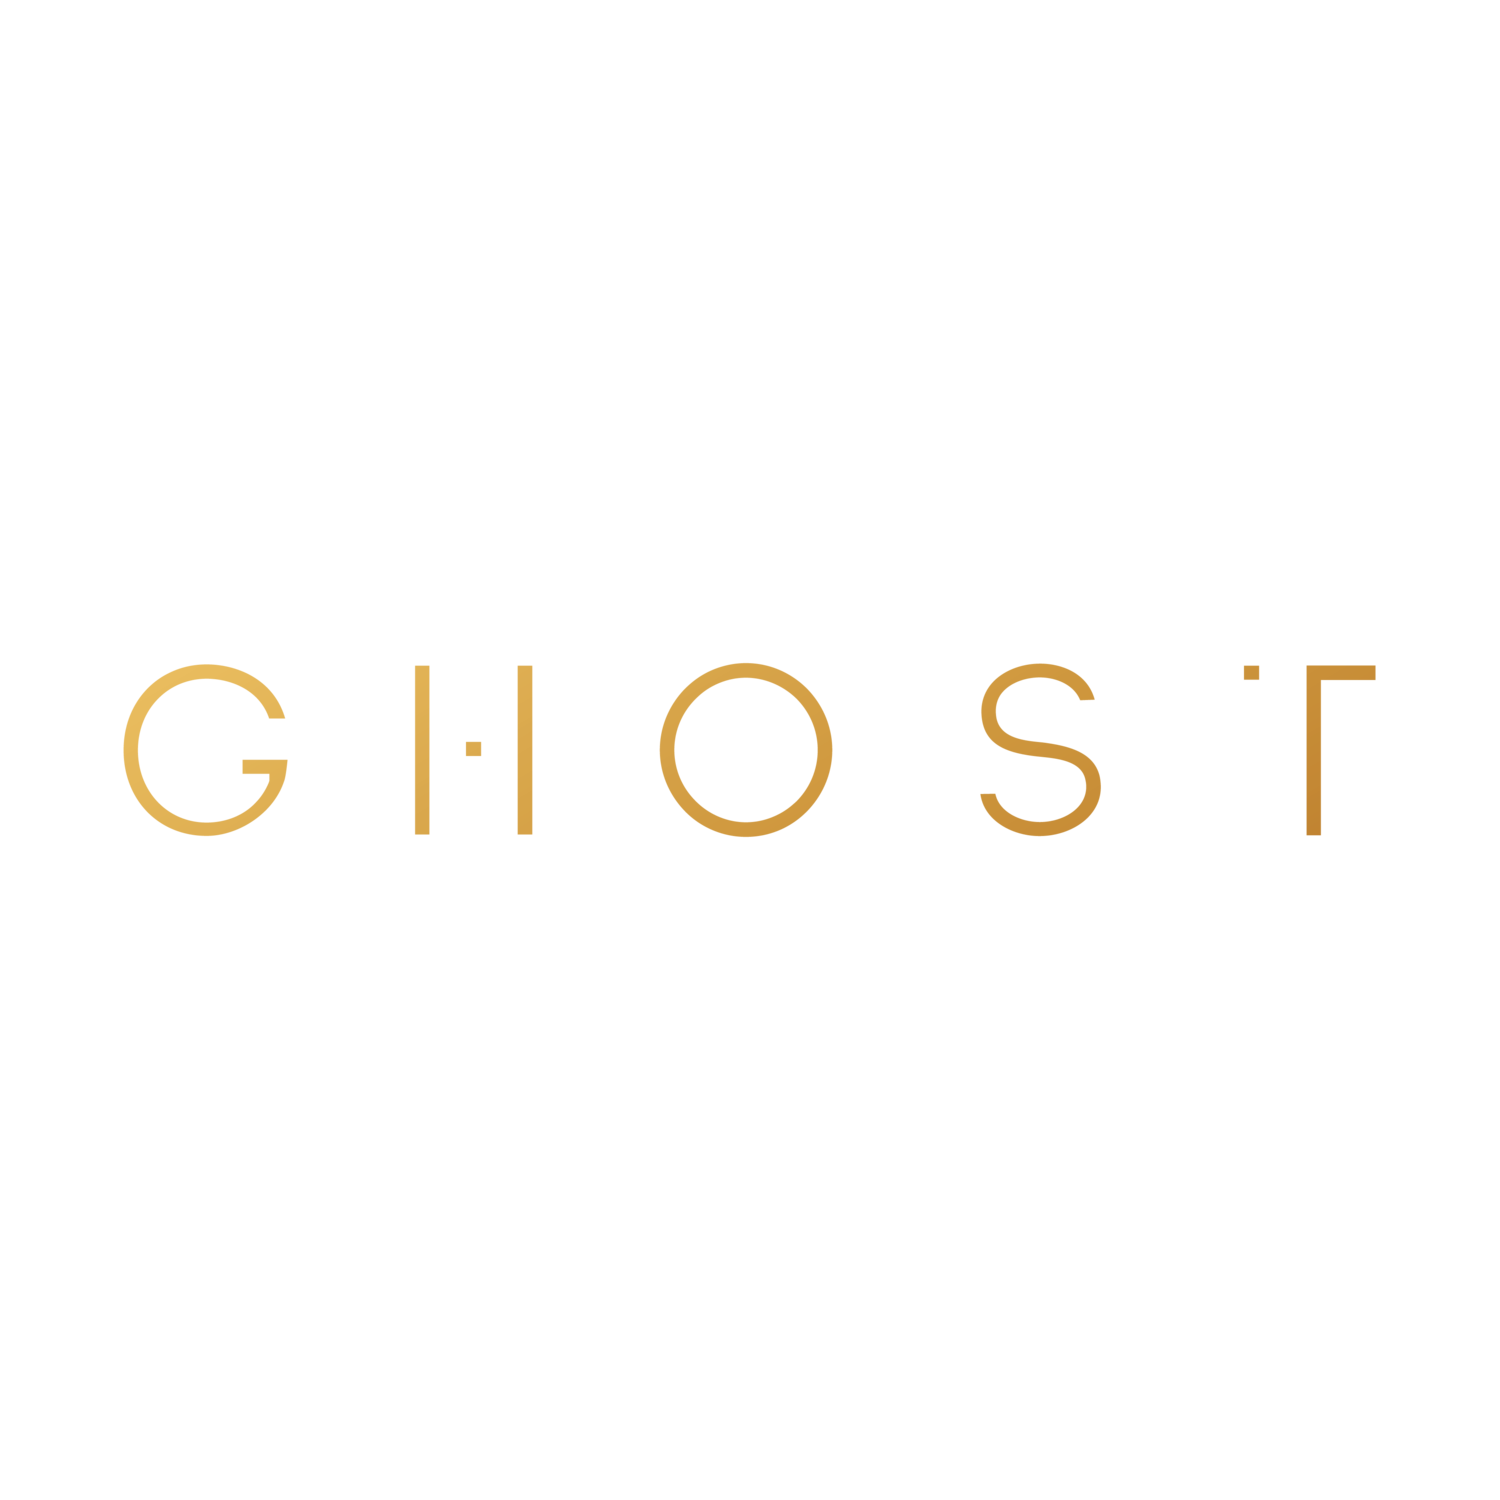 G H O S T